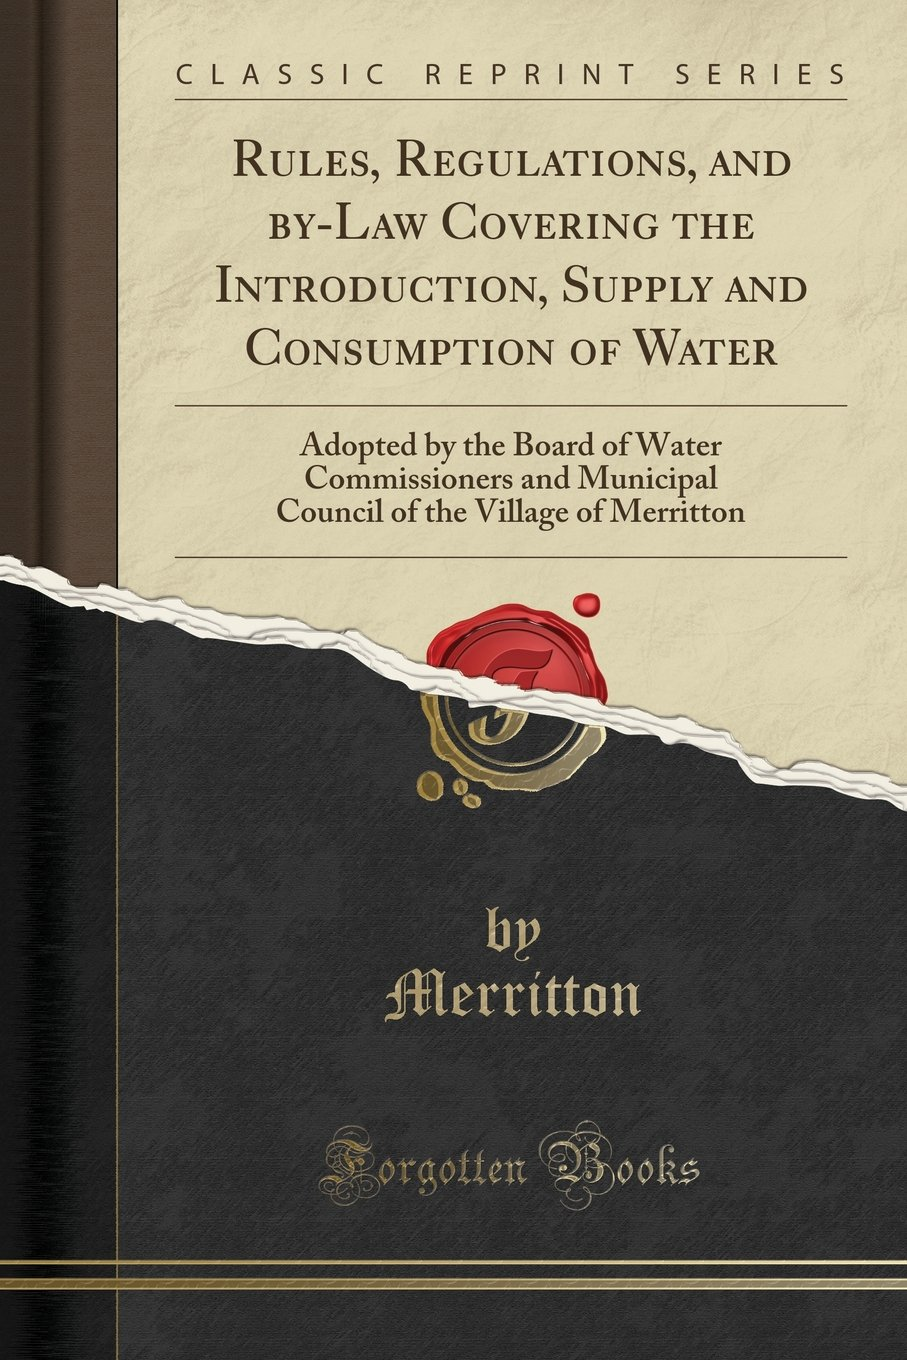 Download Rules, Regulations, and by-Law Covering the Introduction, Supply and Consumption of Water: Adopted by the Board of Water Commissioners and Municipal ... of the Village of Merritton (Classic Reprint) pdf